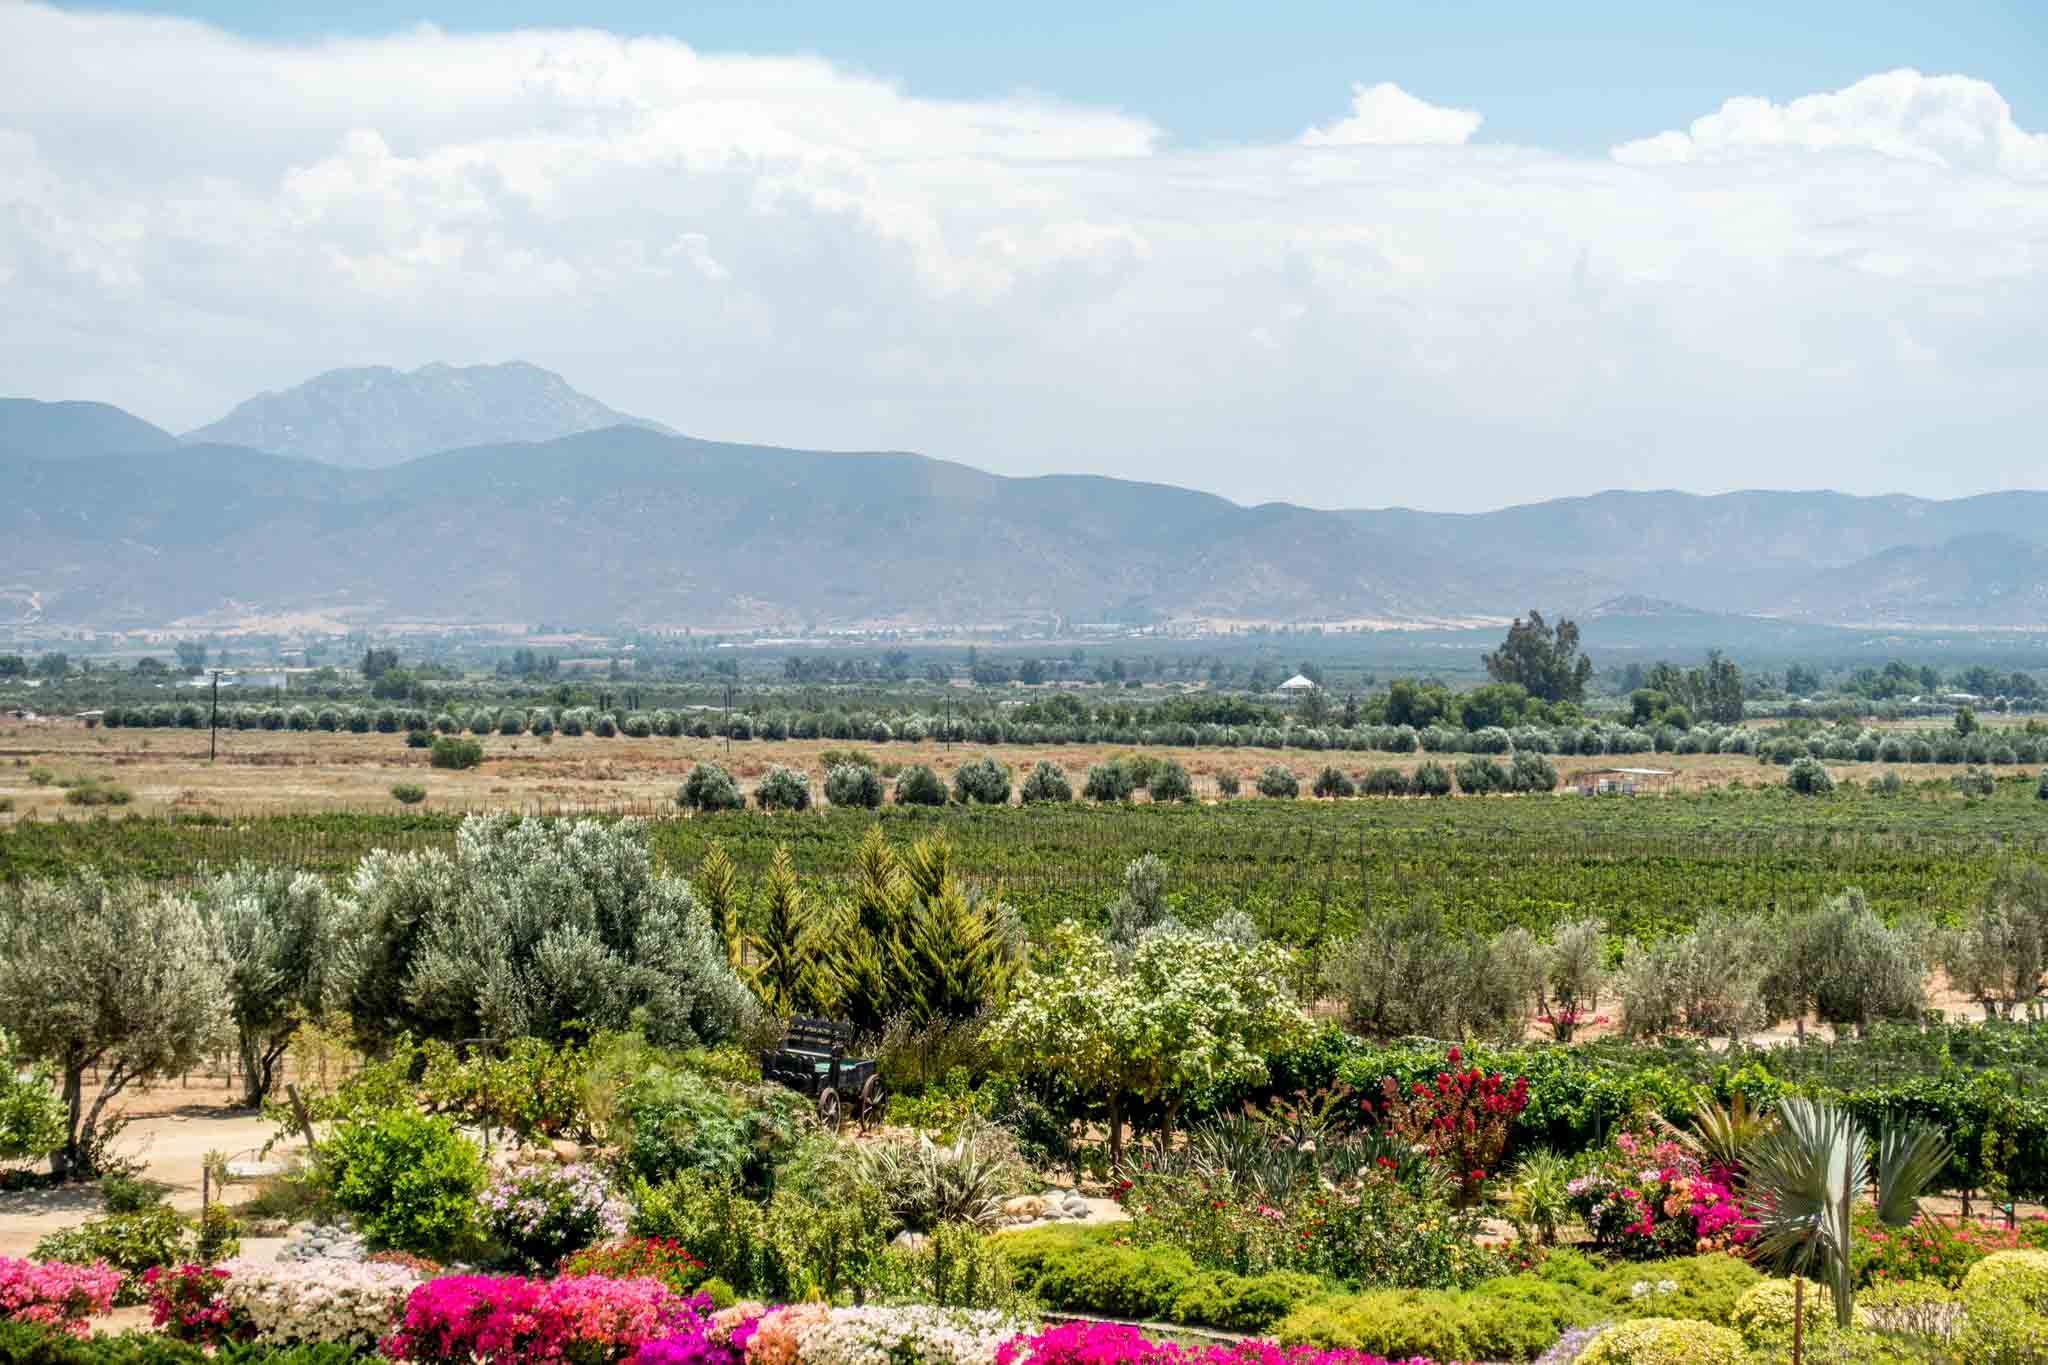 The hills and vineyards of the Valle de Guadalupe of Baja, Mexico